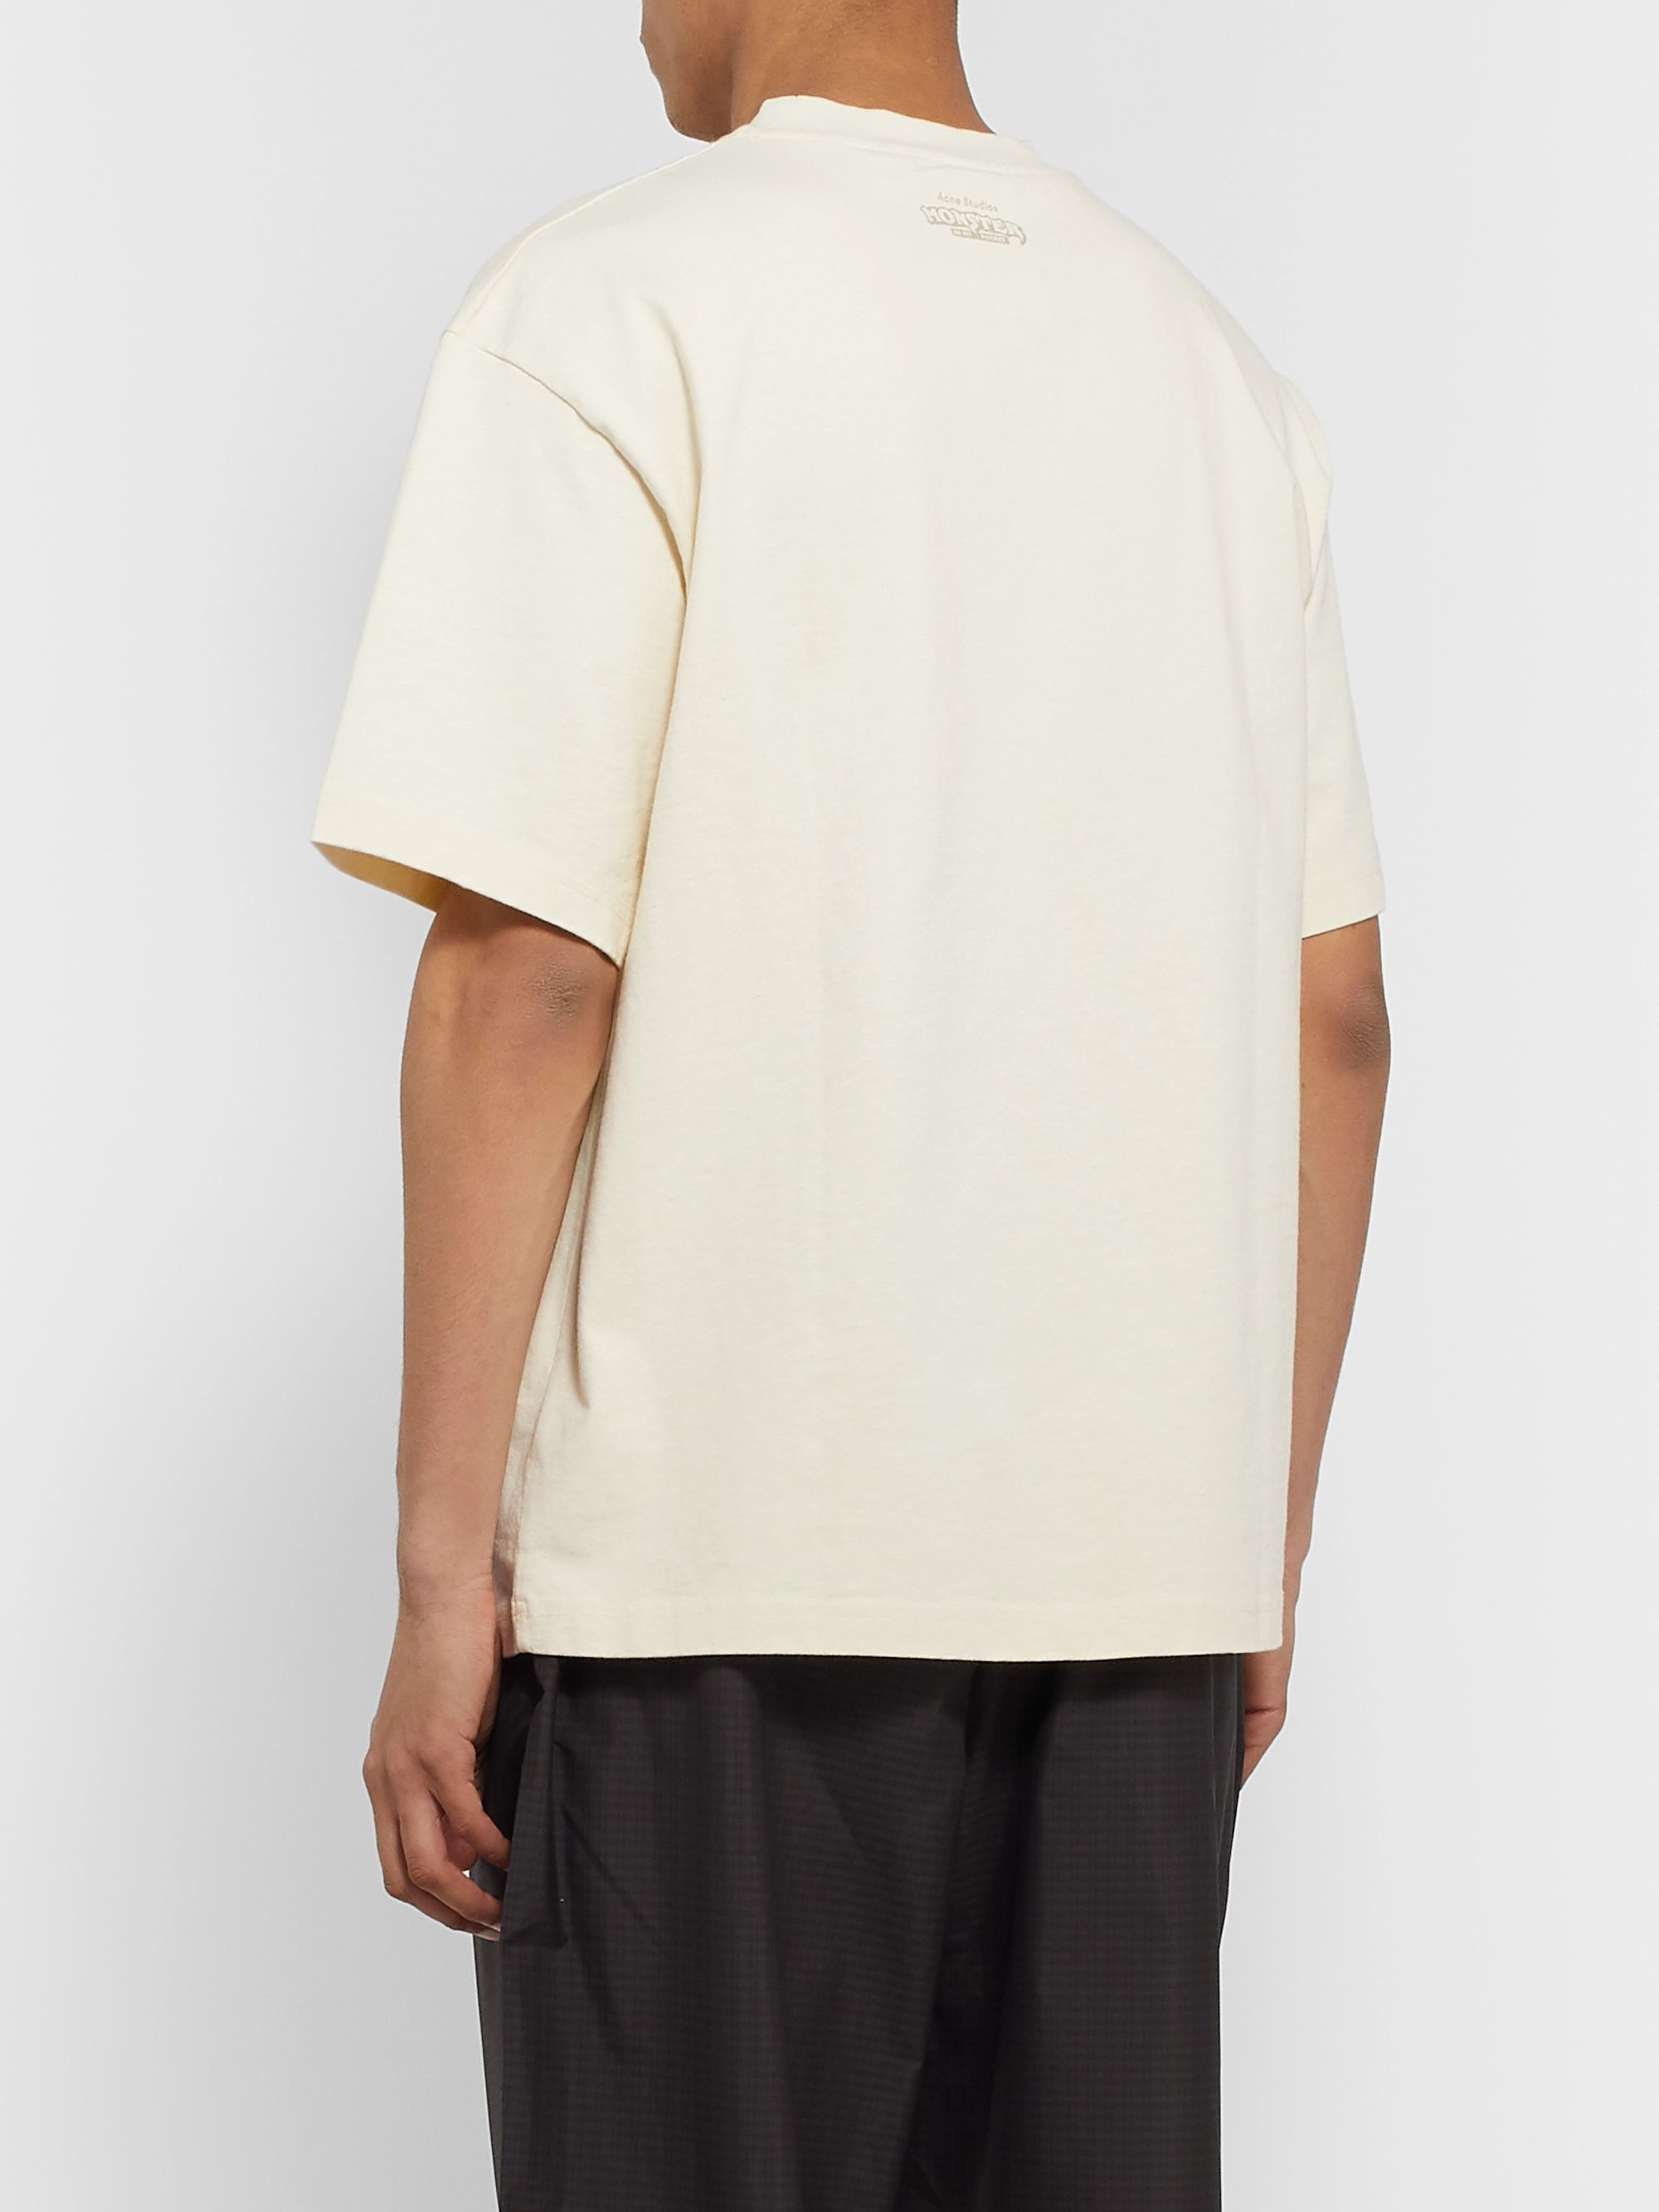 Acne Studios + Monster in My Pocket Printed Cotton-Jersey T-Shirt